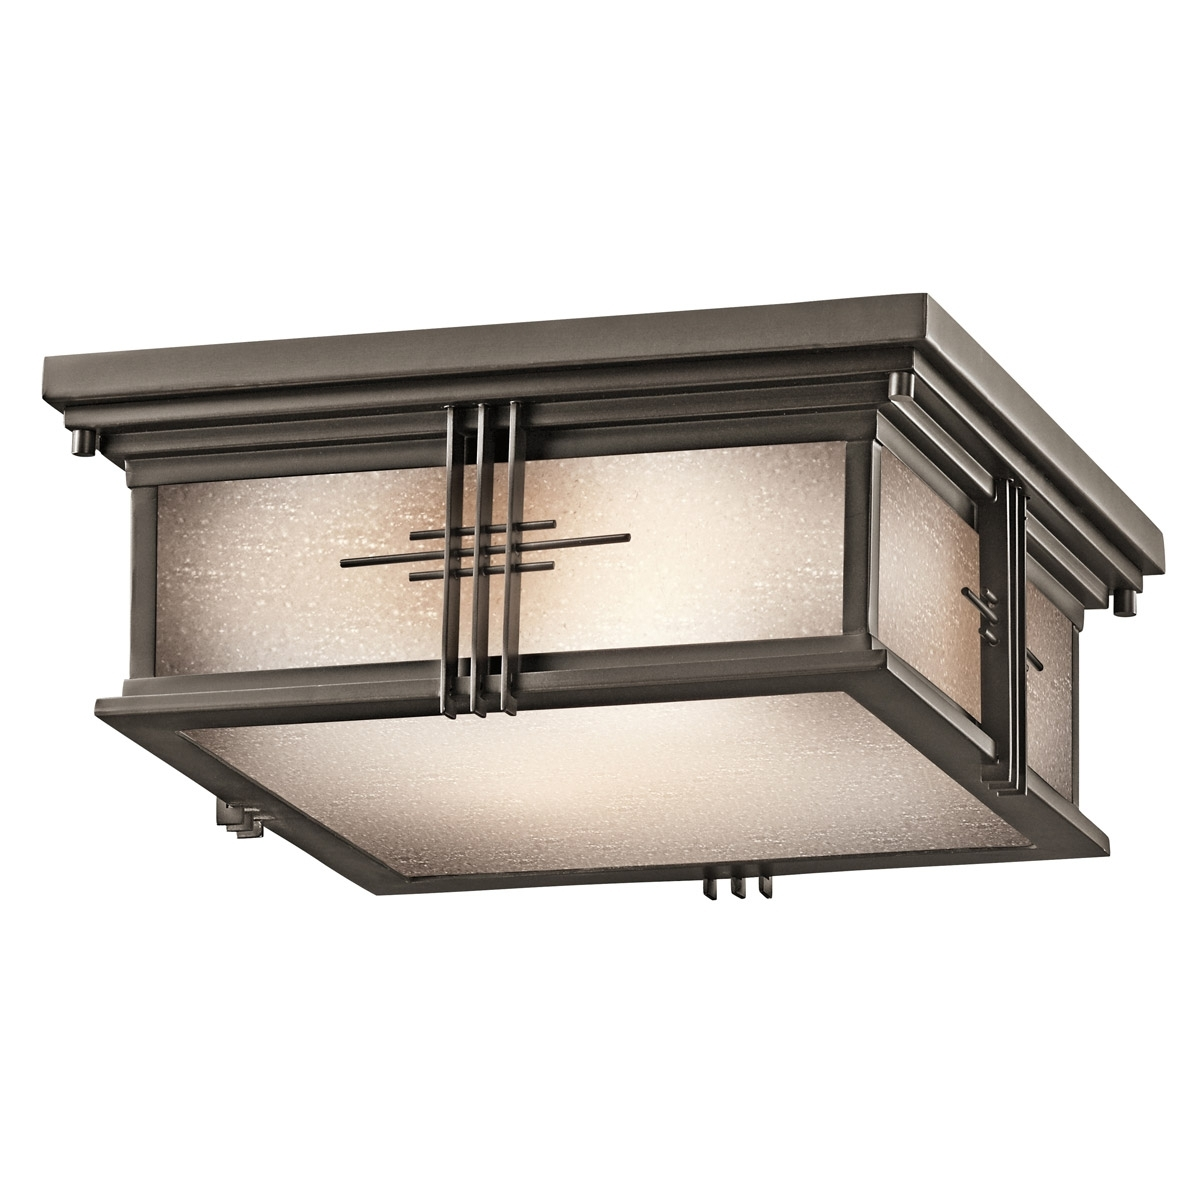 49164Oz Portman Square Outdoor Flush Mount Ceiling Fixture Regarding Well Known Cheap Outdoor Ceiling Lights (Gallery 8 of 20)